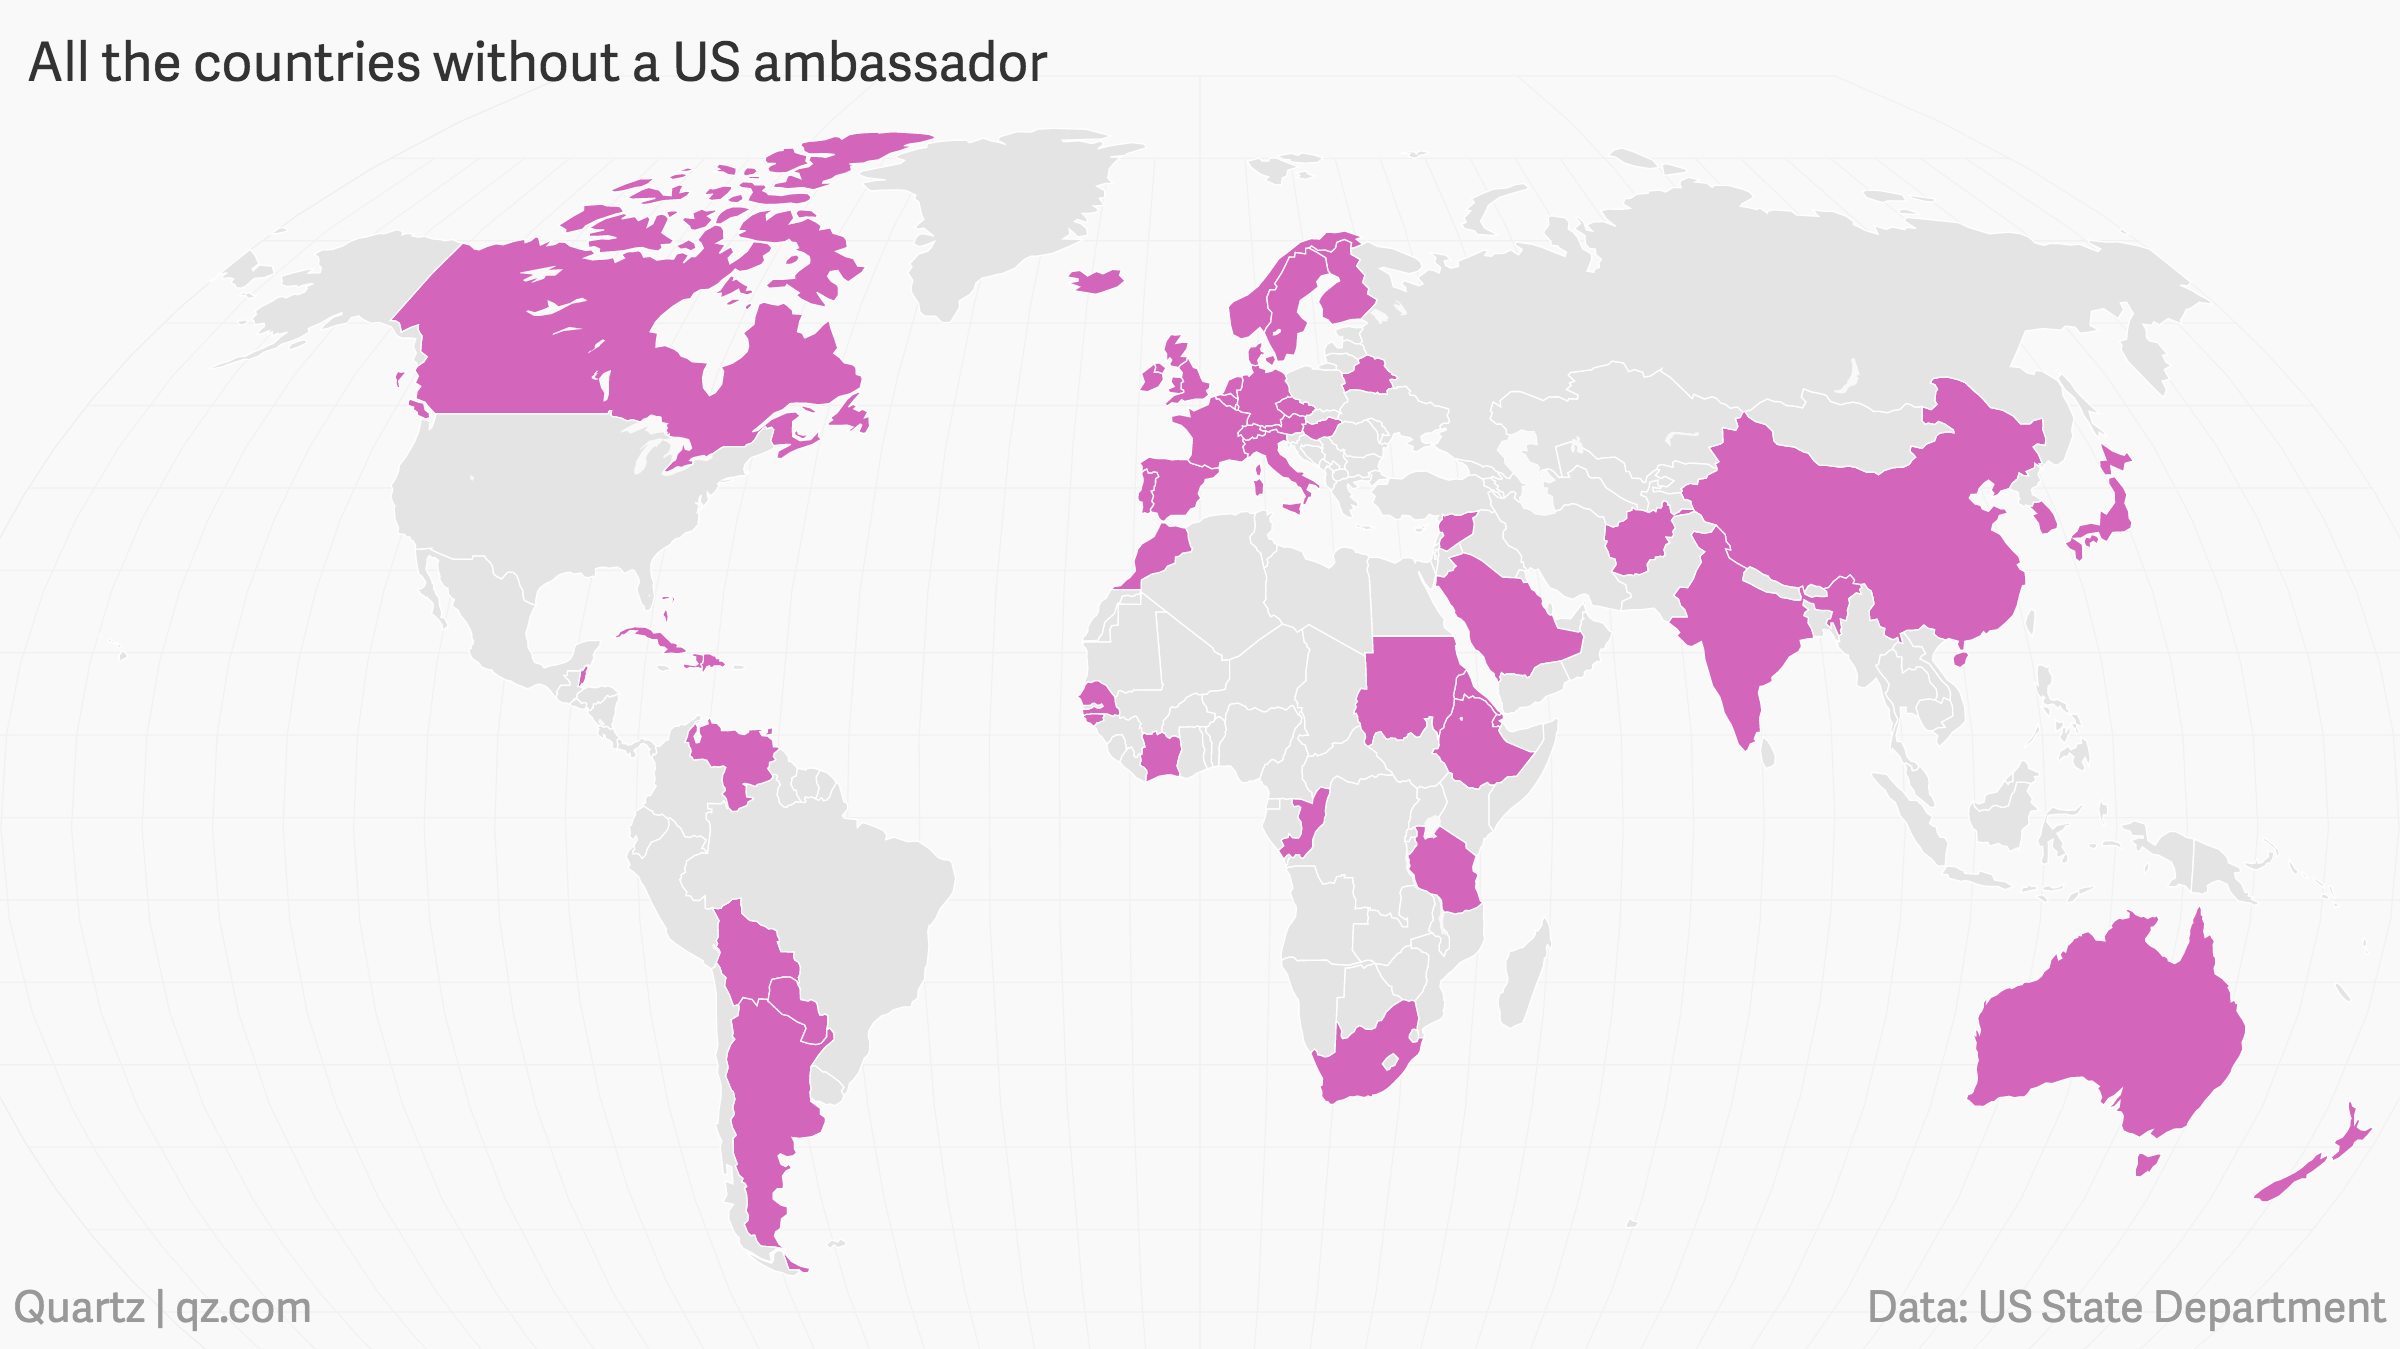 All the countries without a US ambassador